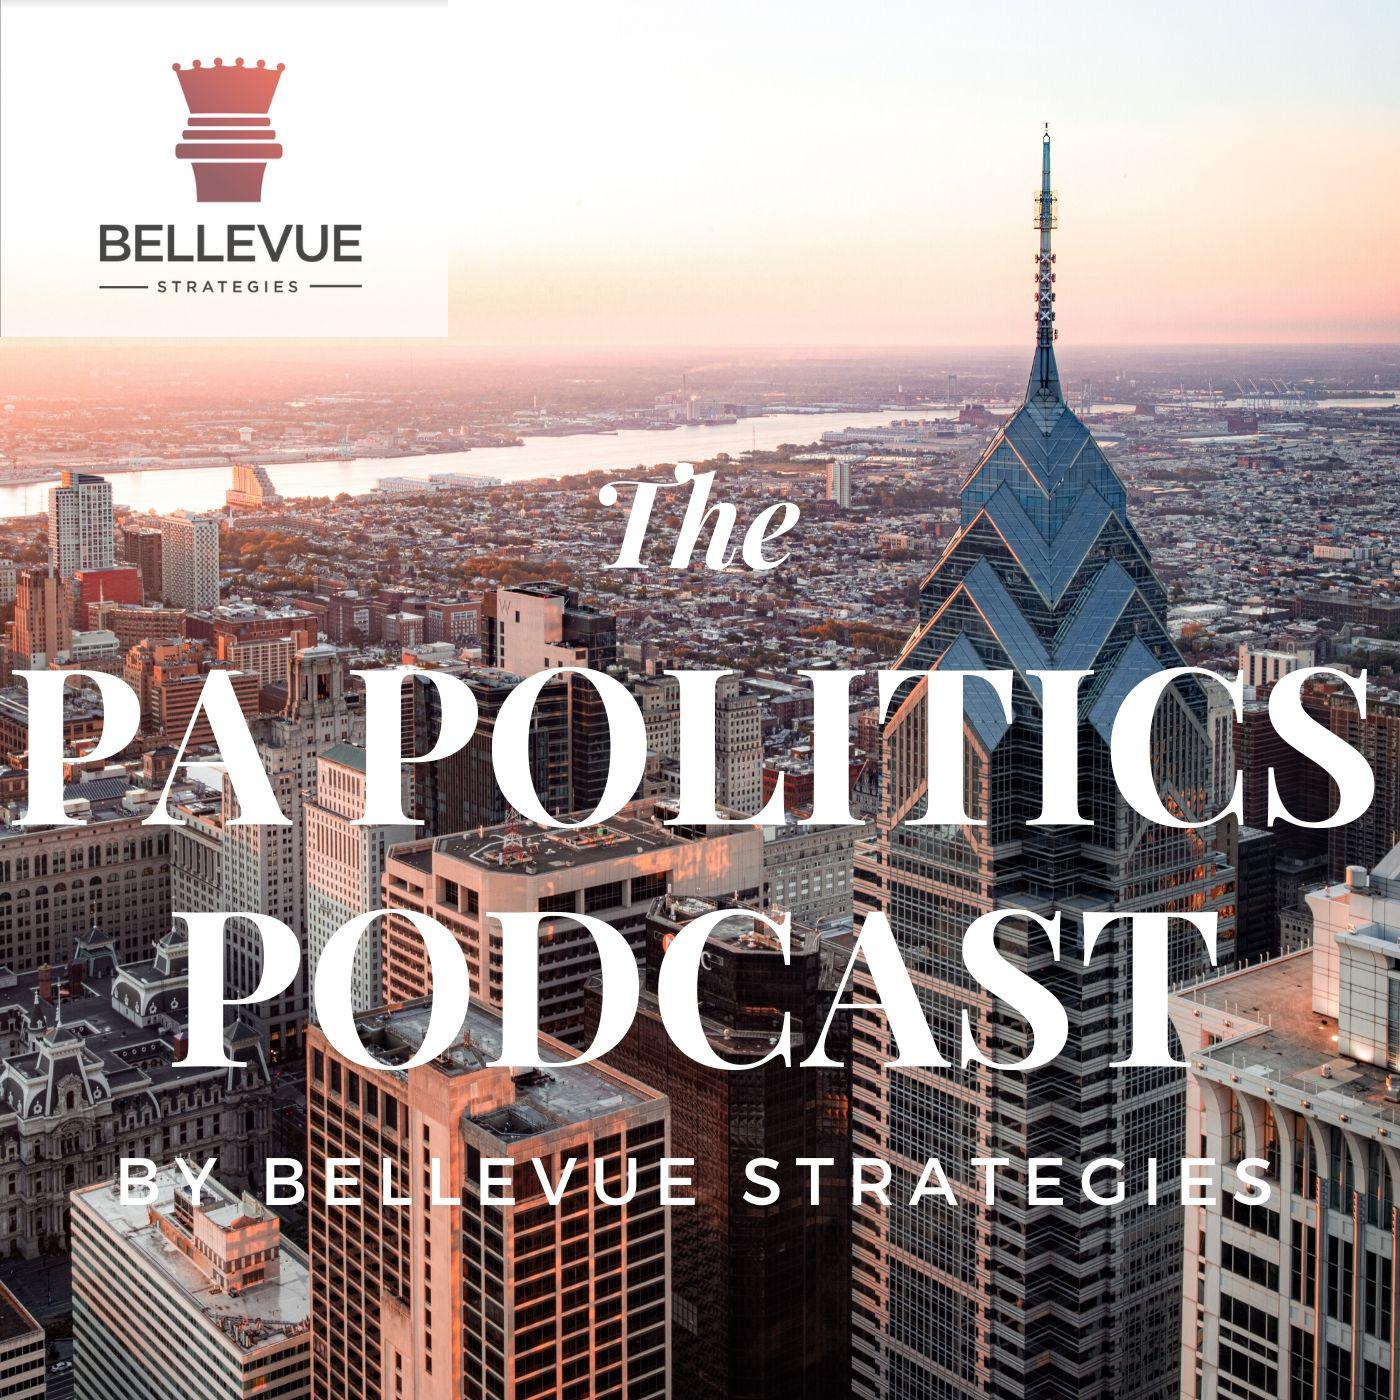 The PA Politics Podcast: Episode 23 - The Pennsylvania Immigrant Family Unity Project